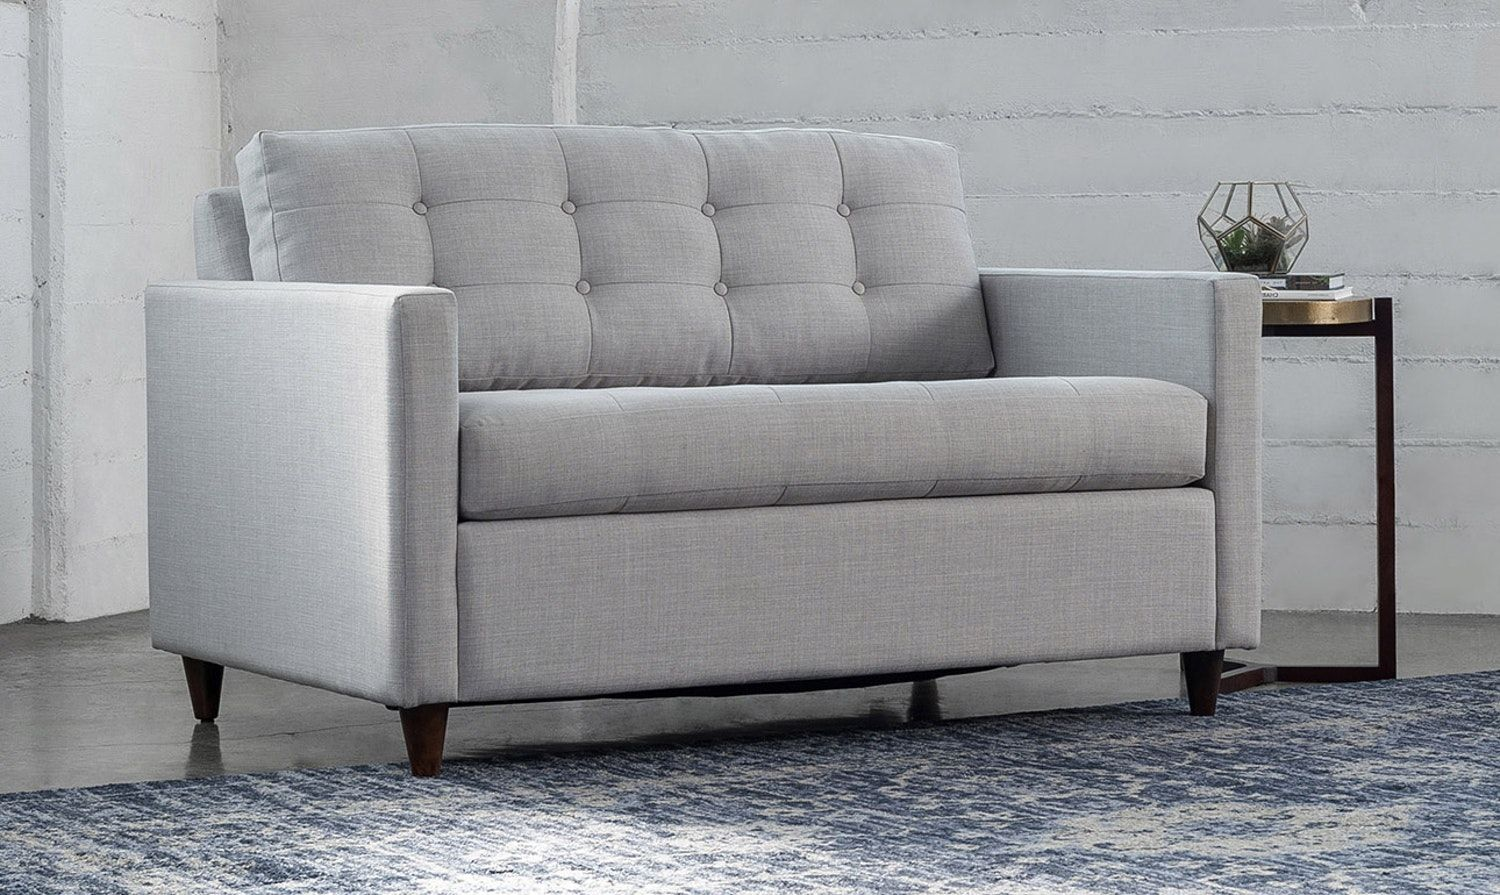 The Best Sleeper Sofas For Small Spaces With Images Sofas For